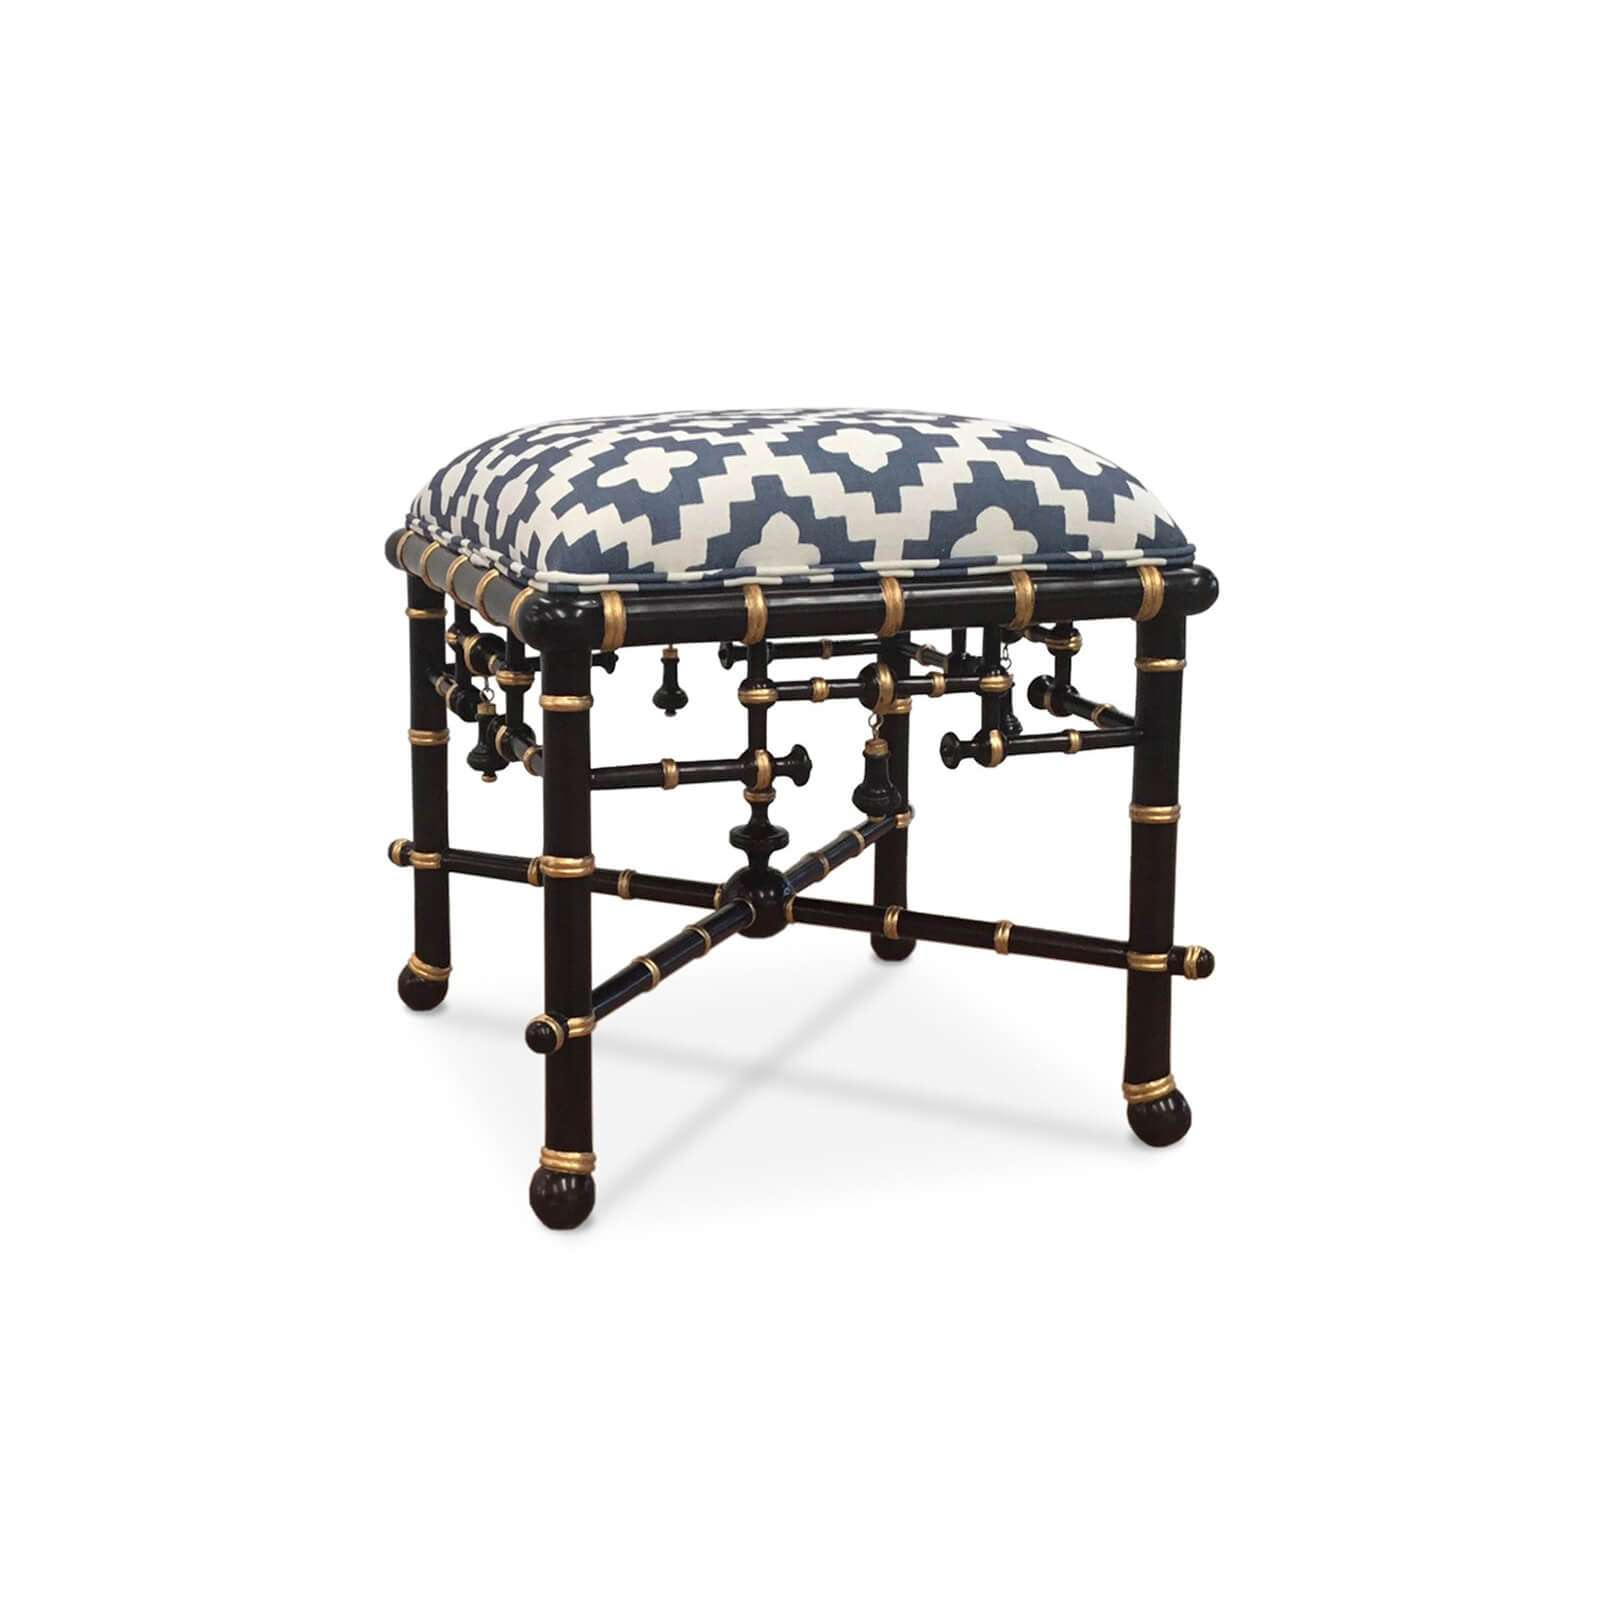 MANDARIN OTTOMAN CUSTOM 1 - STUART MEMBERY HOME COLLECTION